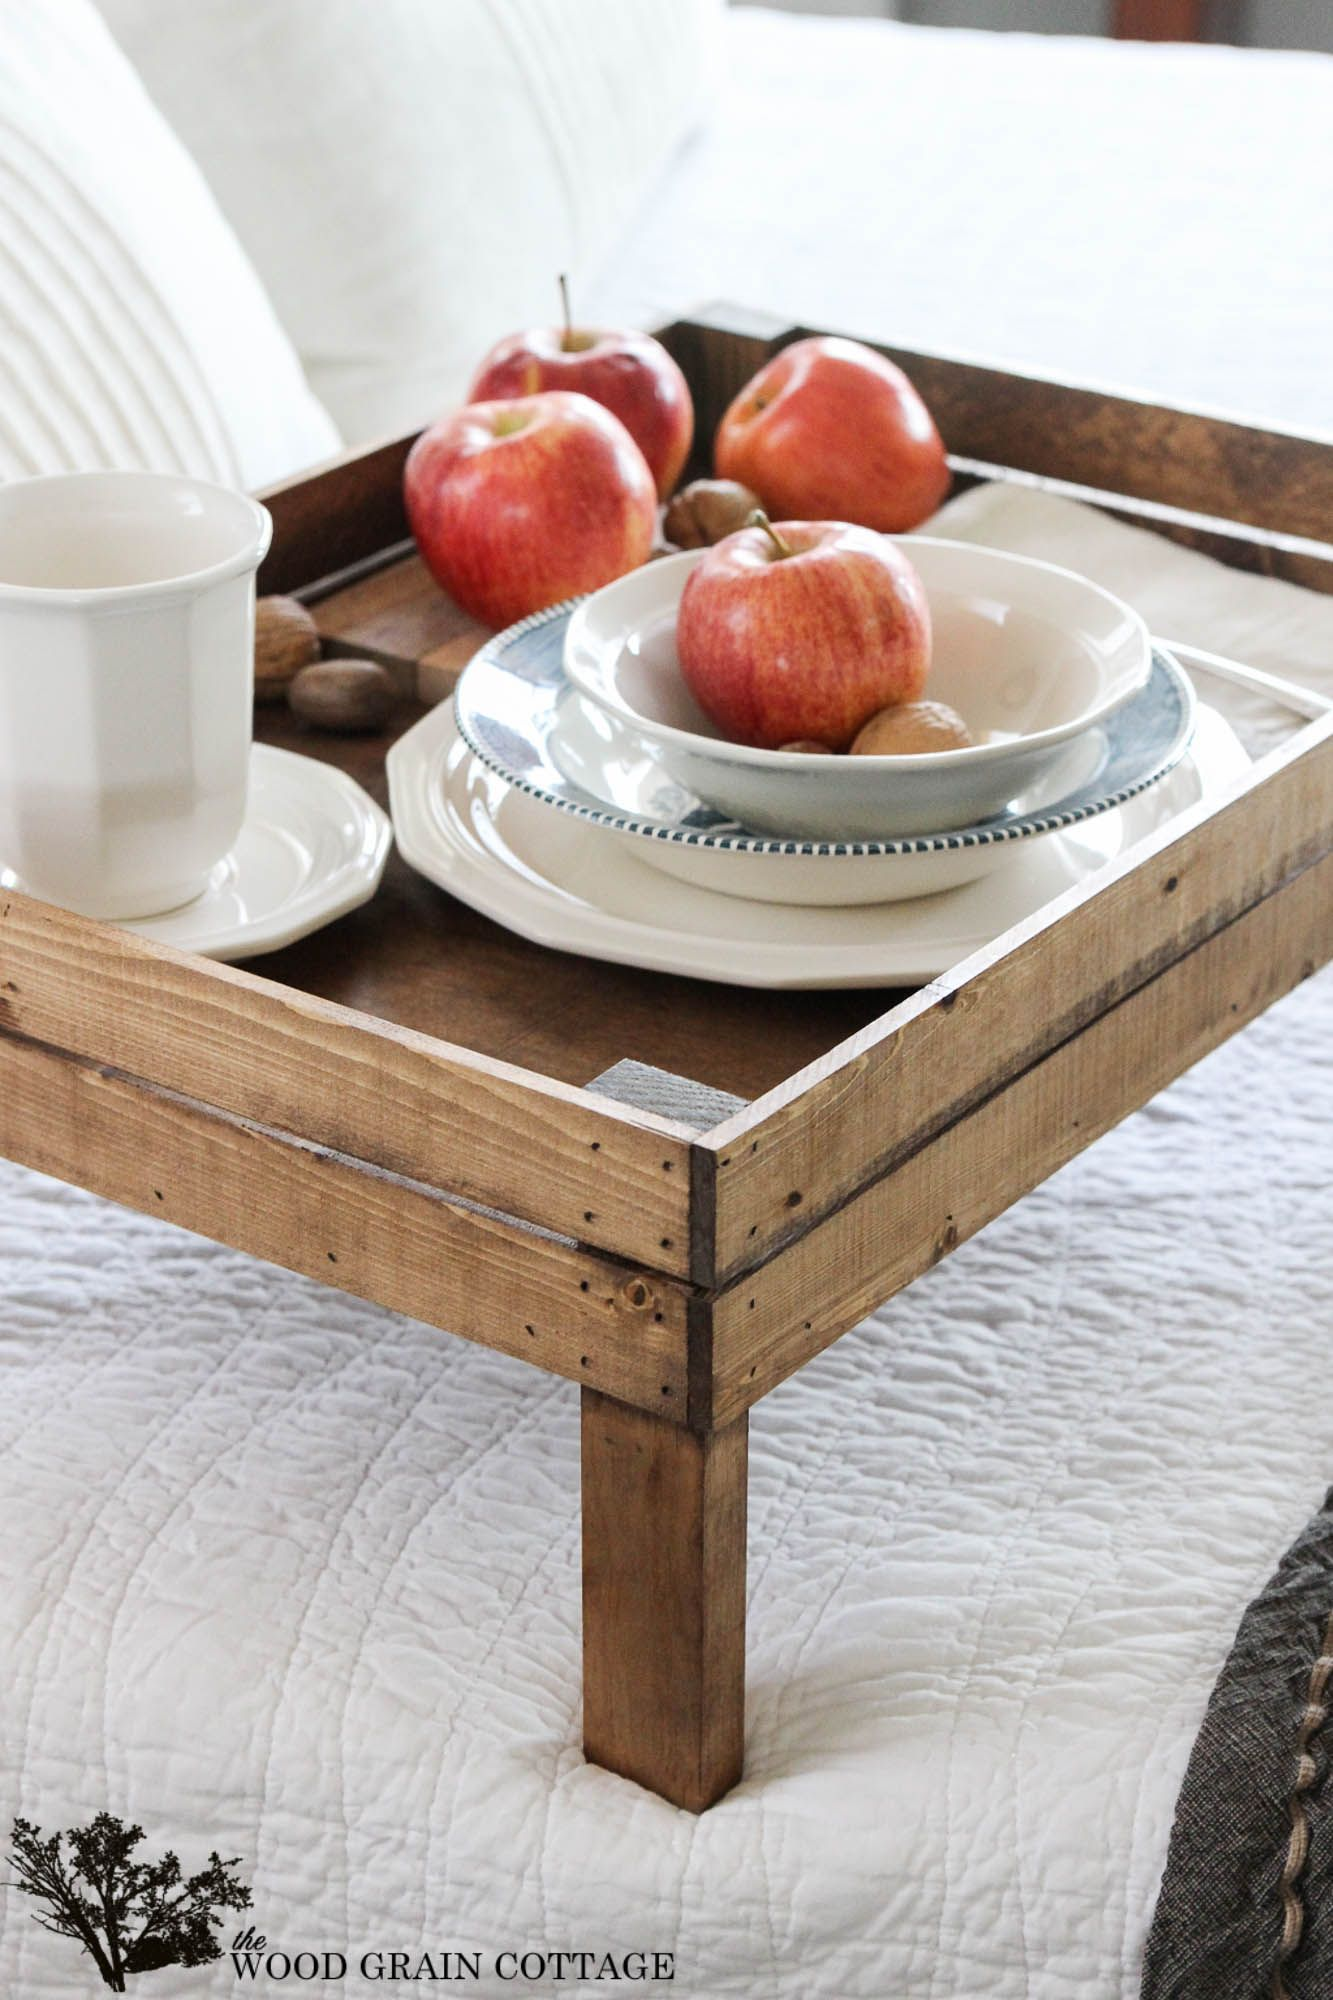 Breakfast Trays For Bed Mesmerizing Breakfast In Bed Tray  Bed Time Routine Bed Tray And Trays Inspiration